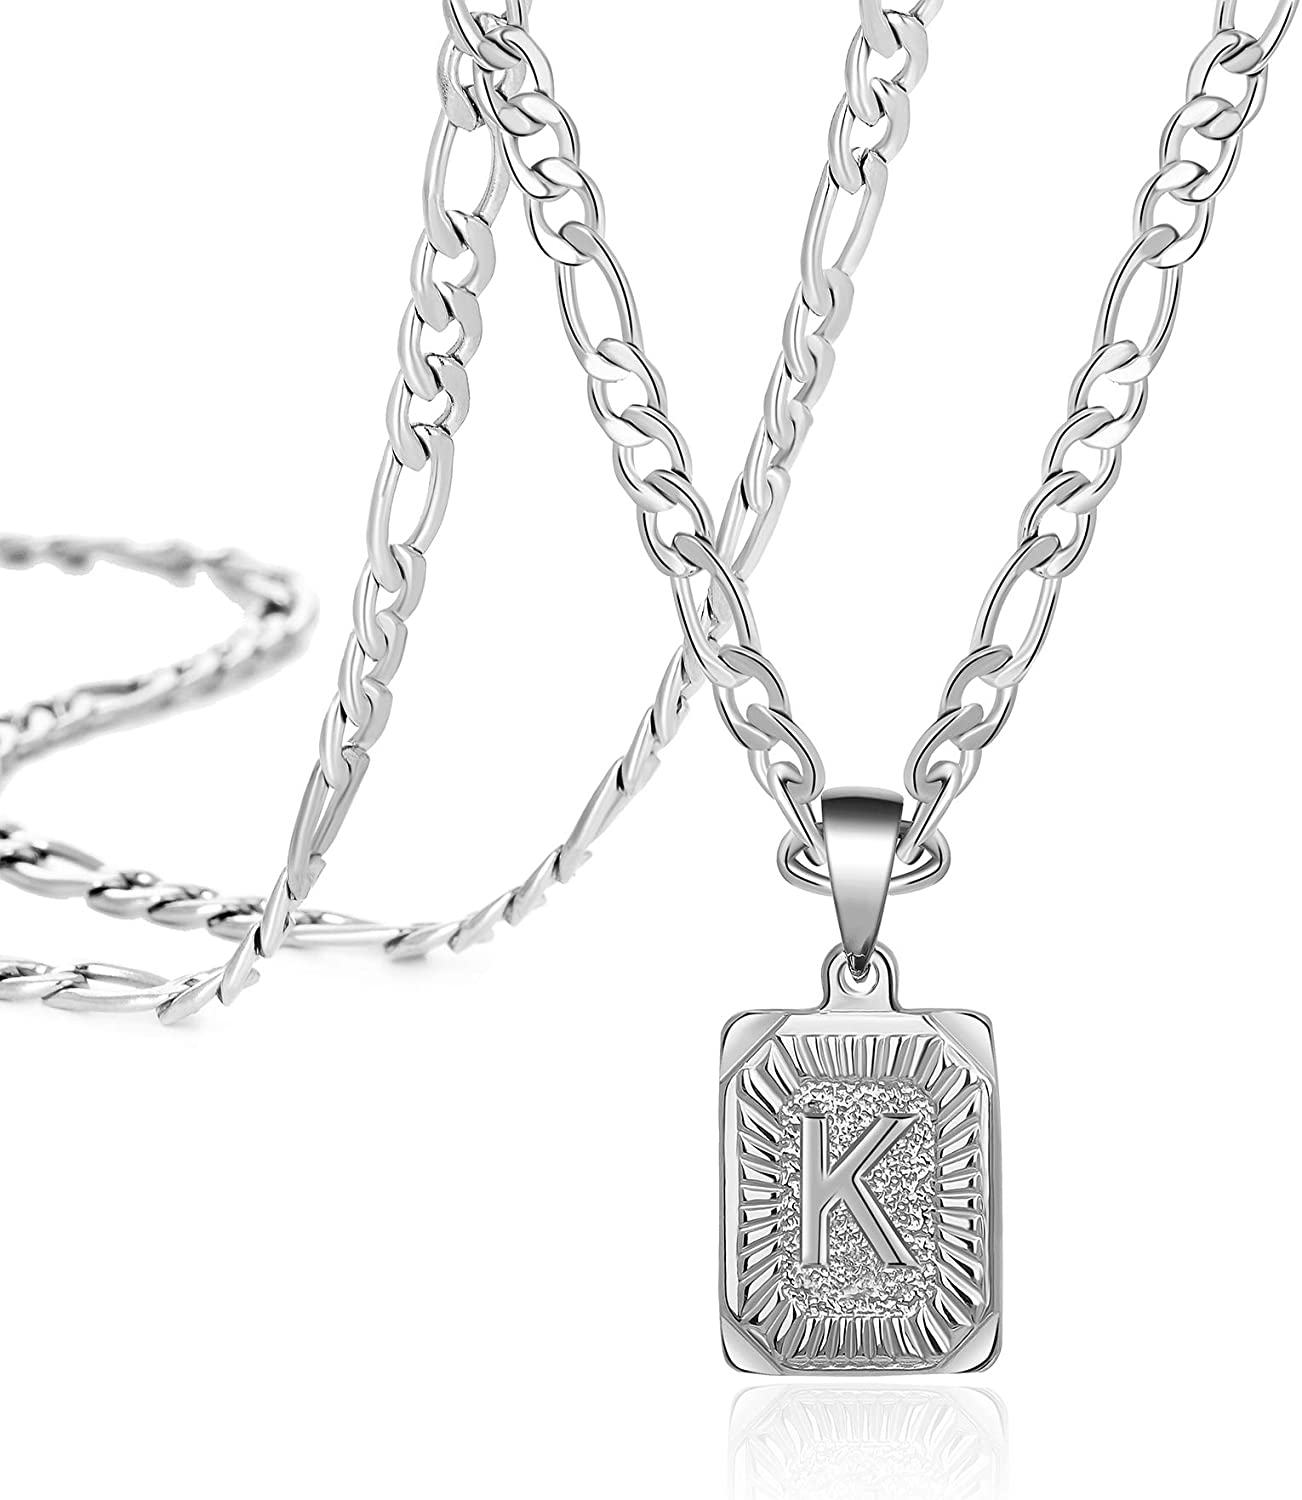 Stainless Steel Initial Letter Pendant Necklace Personalized 26 Alhpabets Jewelry for Women Men Teenage Sister Mom Daughter Best Friend Bridesmaid Brother Rectangle Stainless Steel Figaro Chain